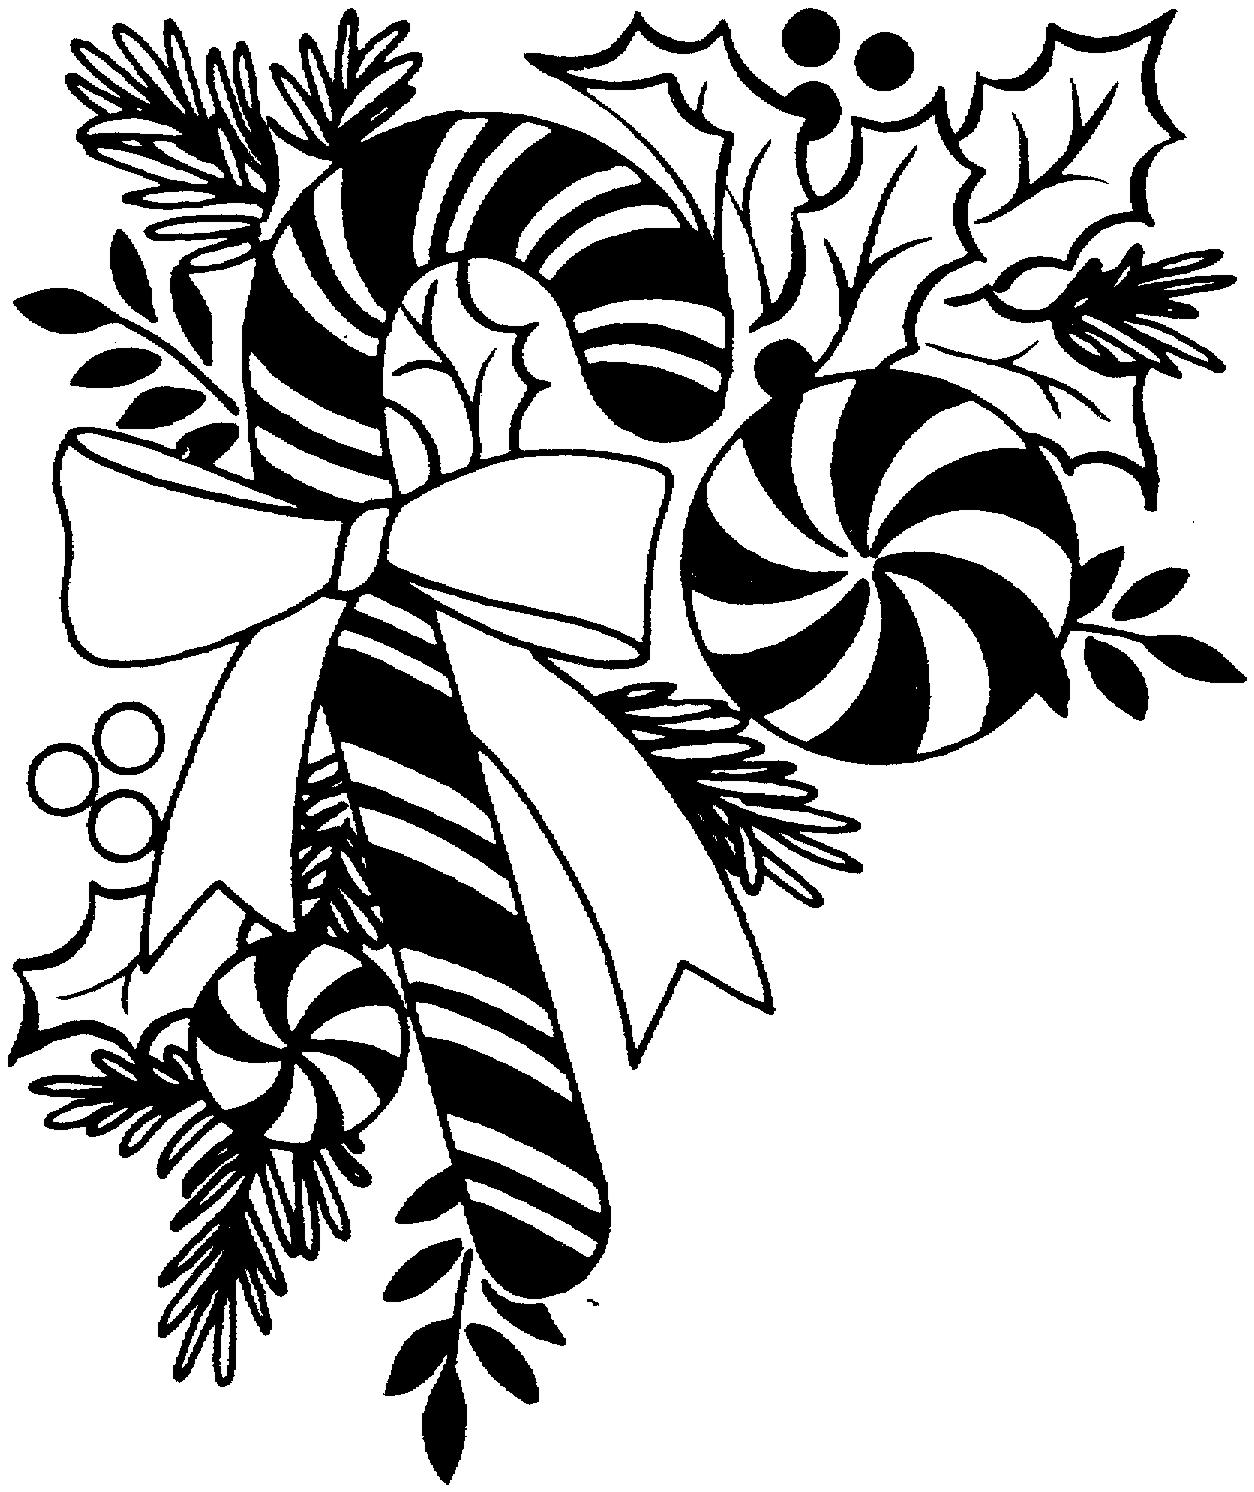 clip art free black and white downloads - photo #31